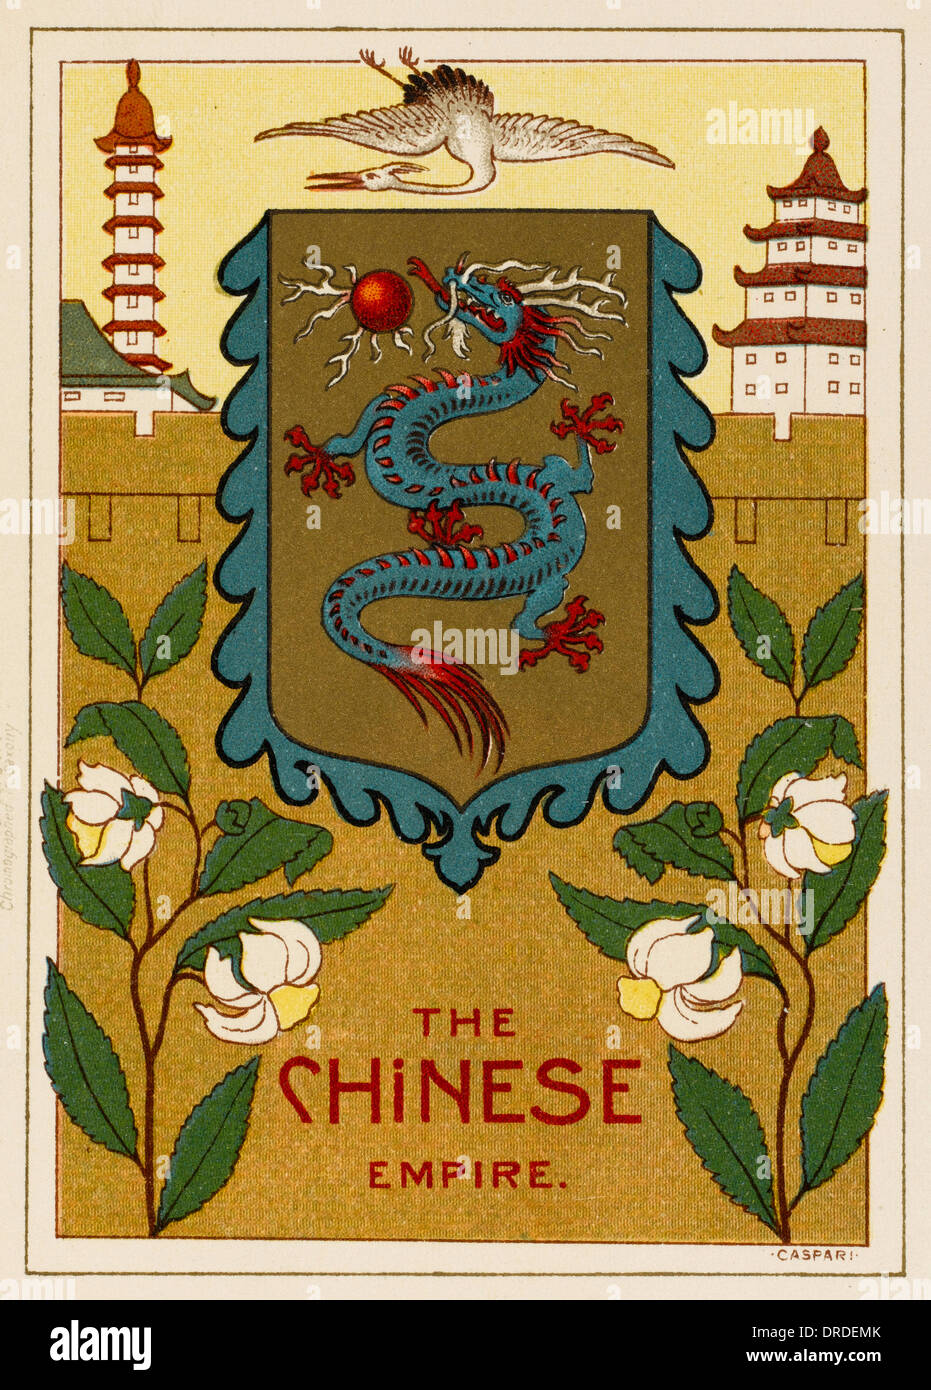 The Chinese Empire - Stock Image